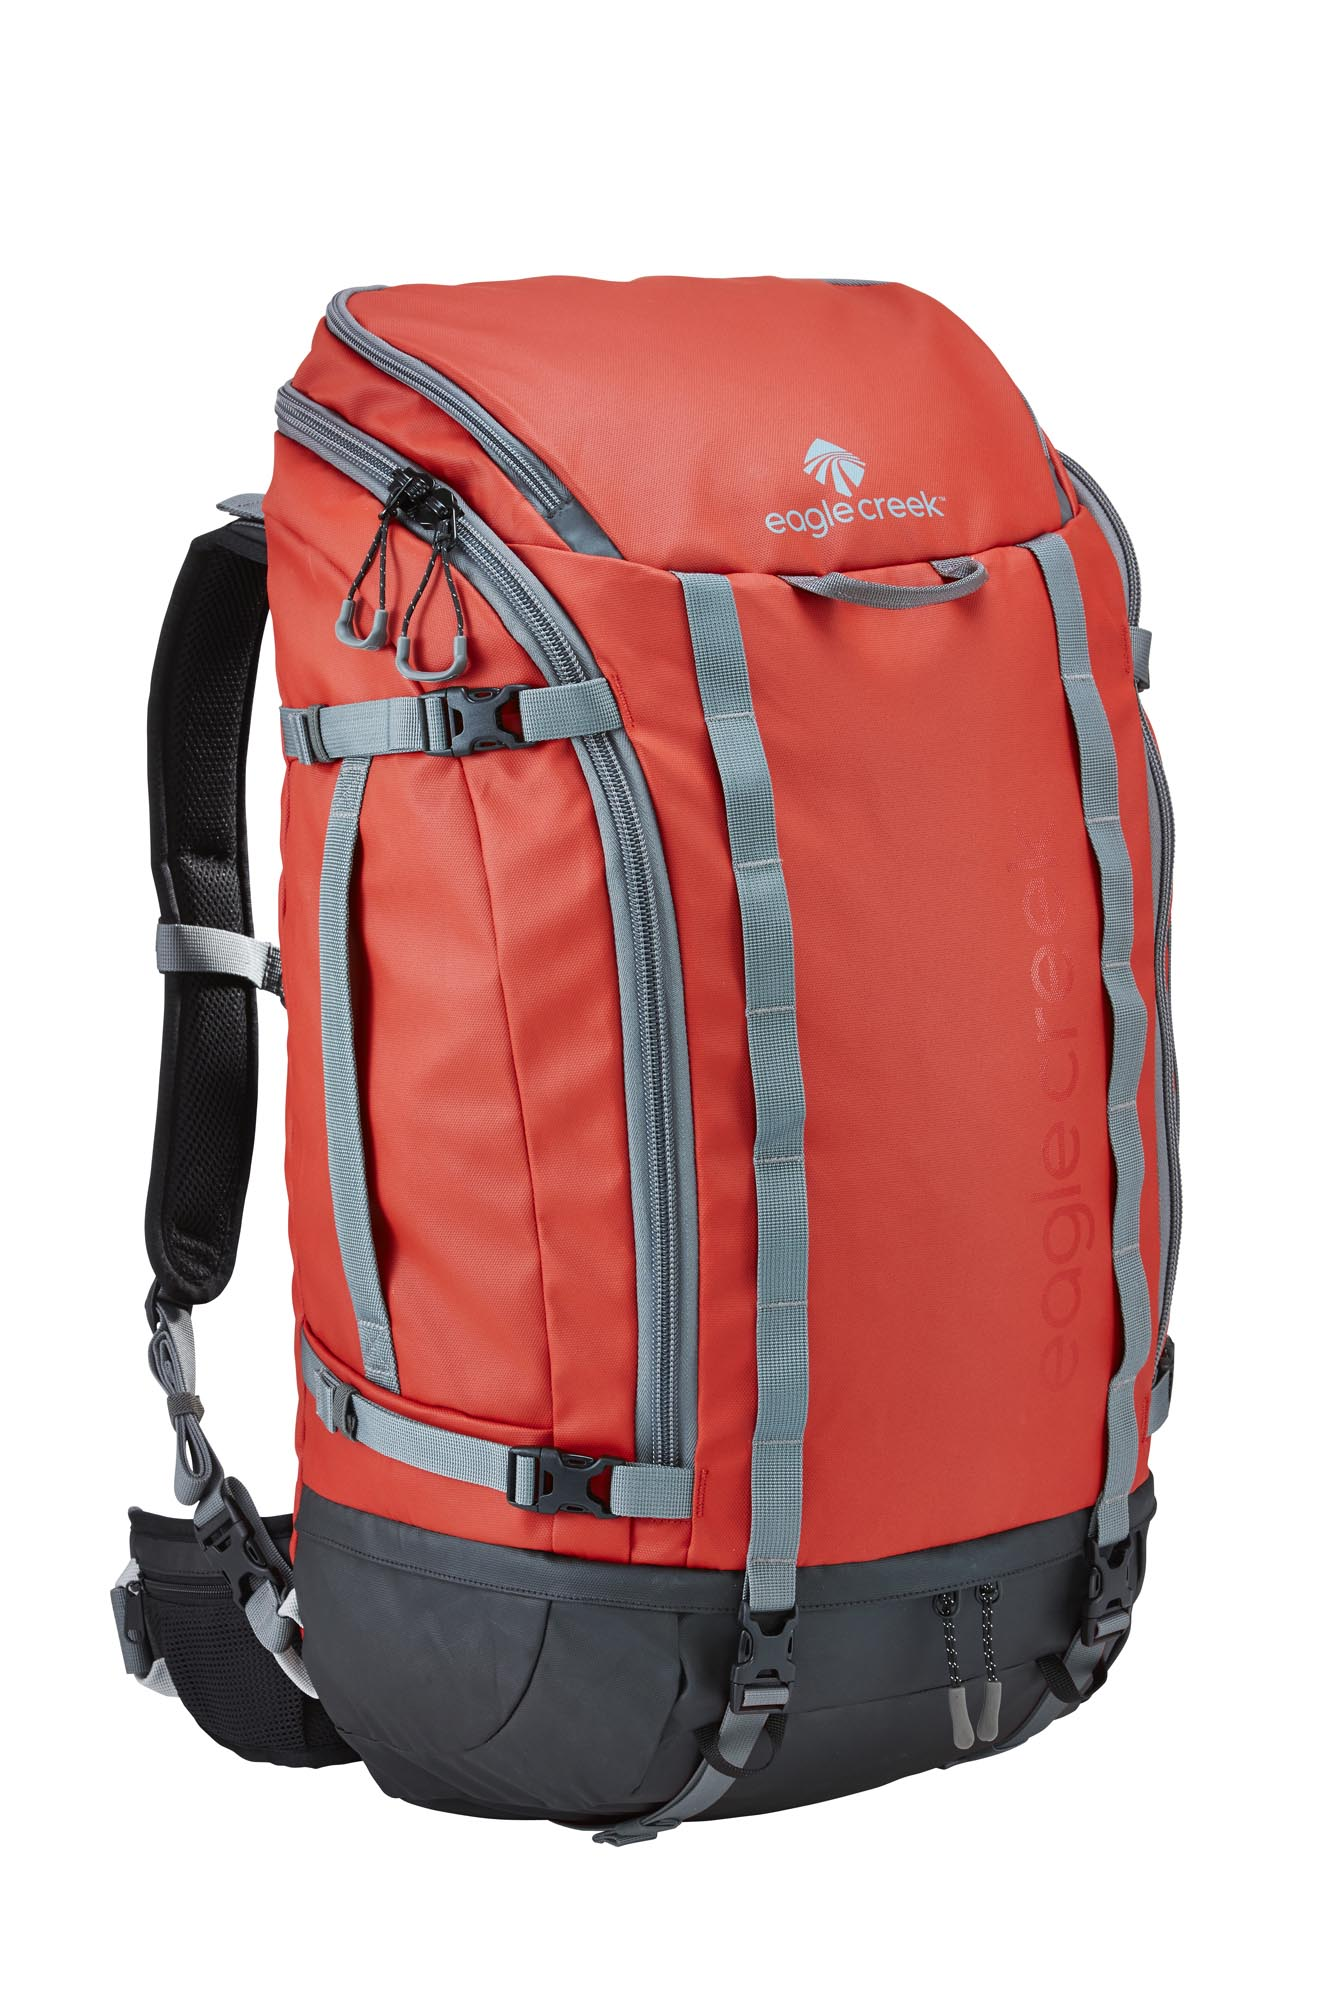 EagleCreek - Systems Go Duffel Pack 60L Red Clay - Duffels -